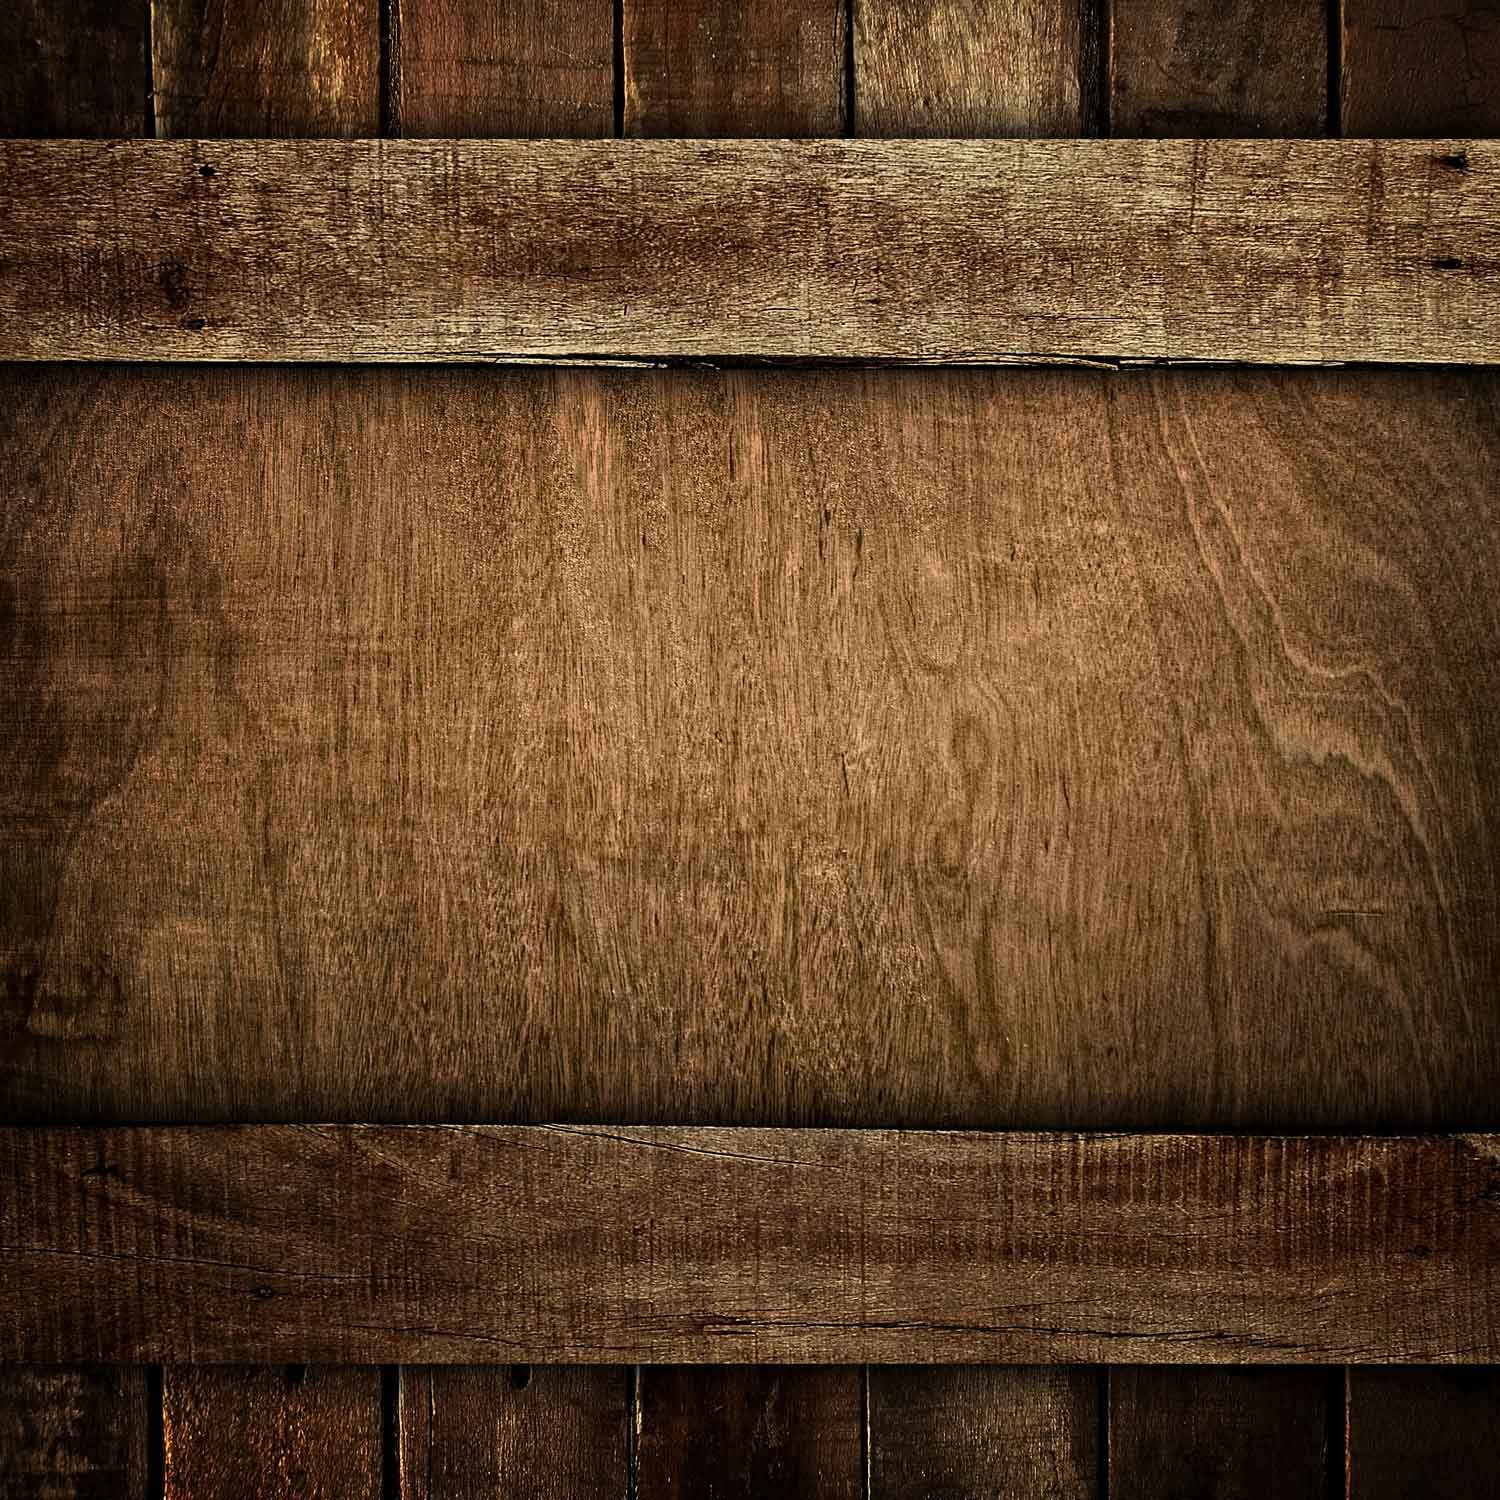 Rustic Background For Website Qm7OPvhk